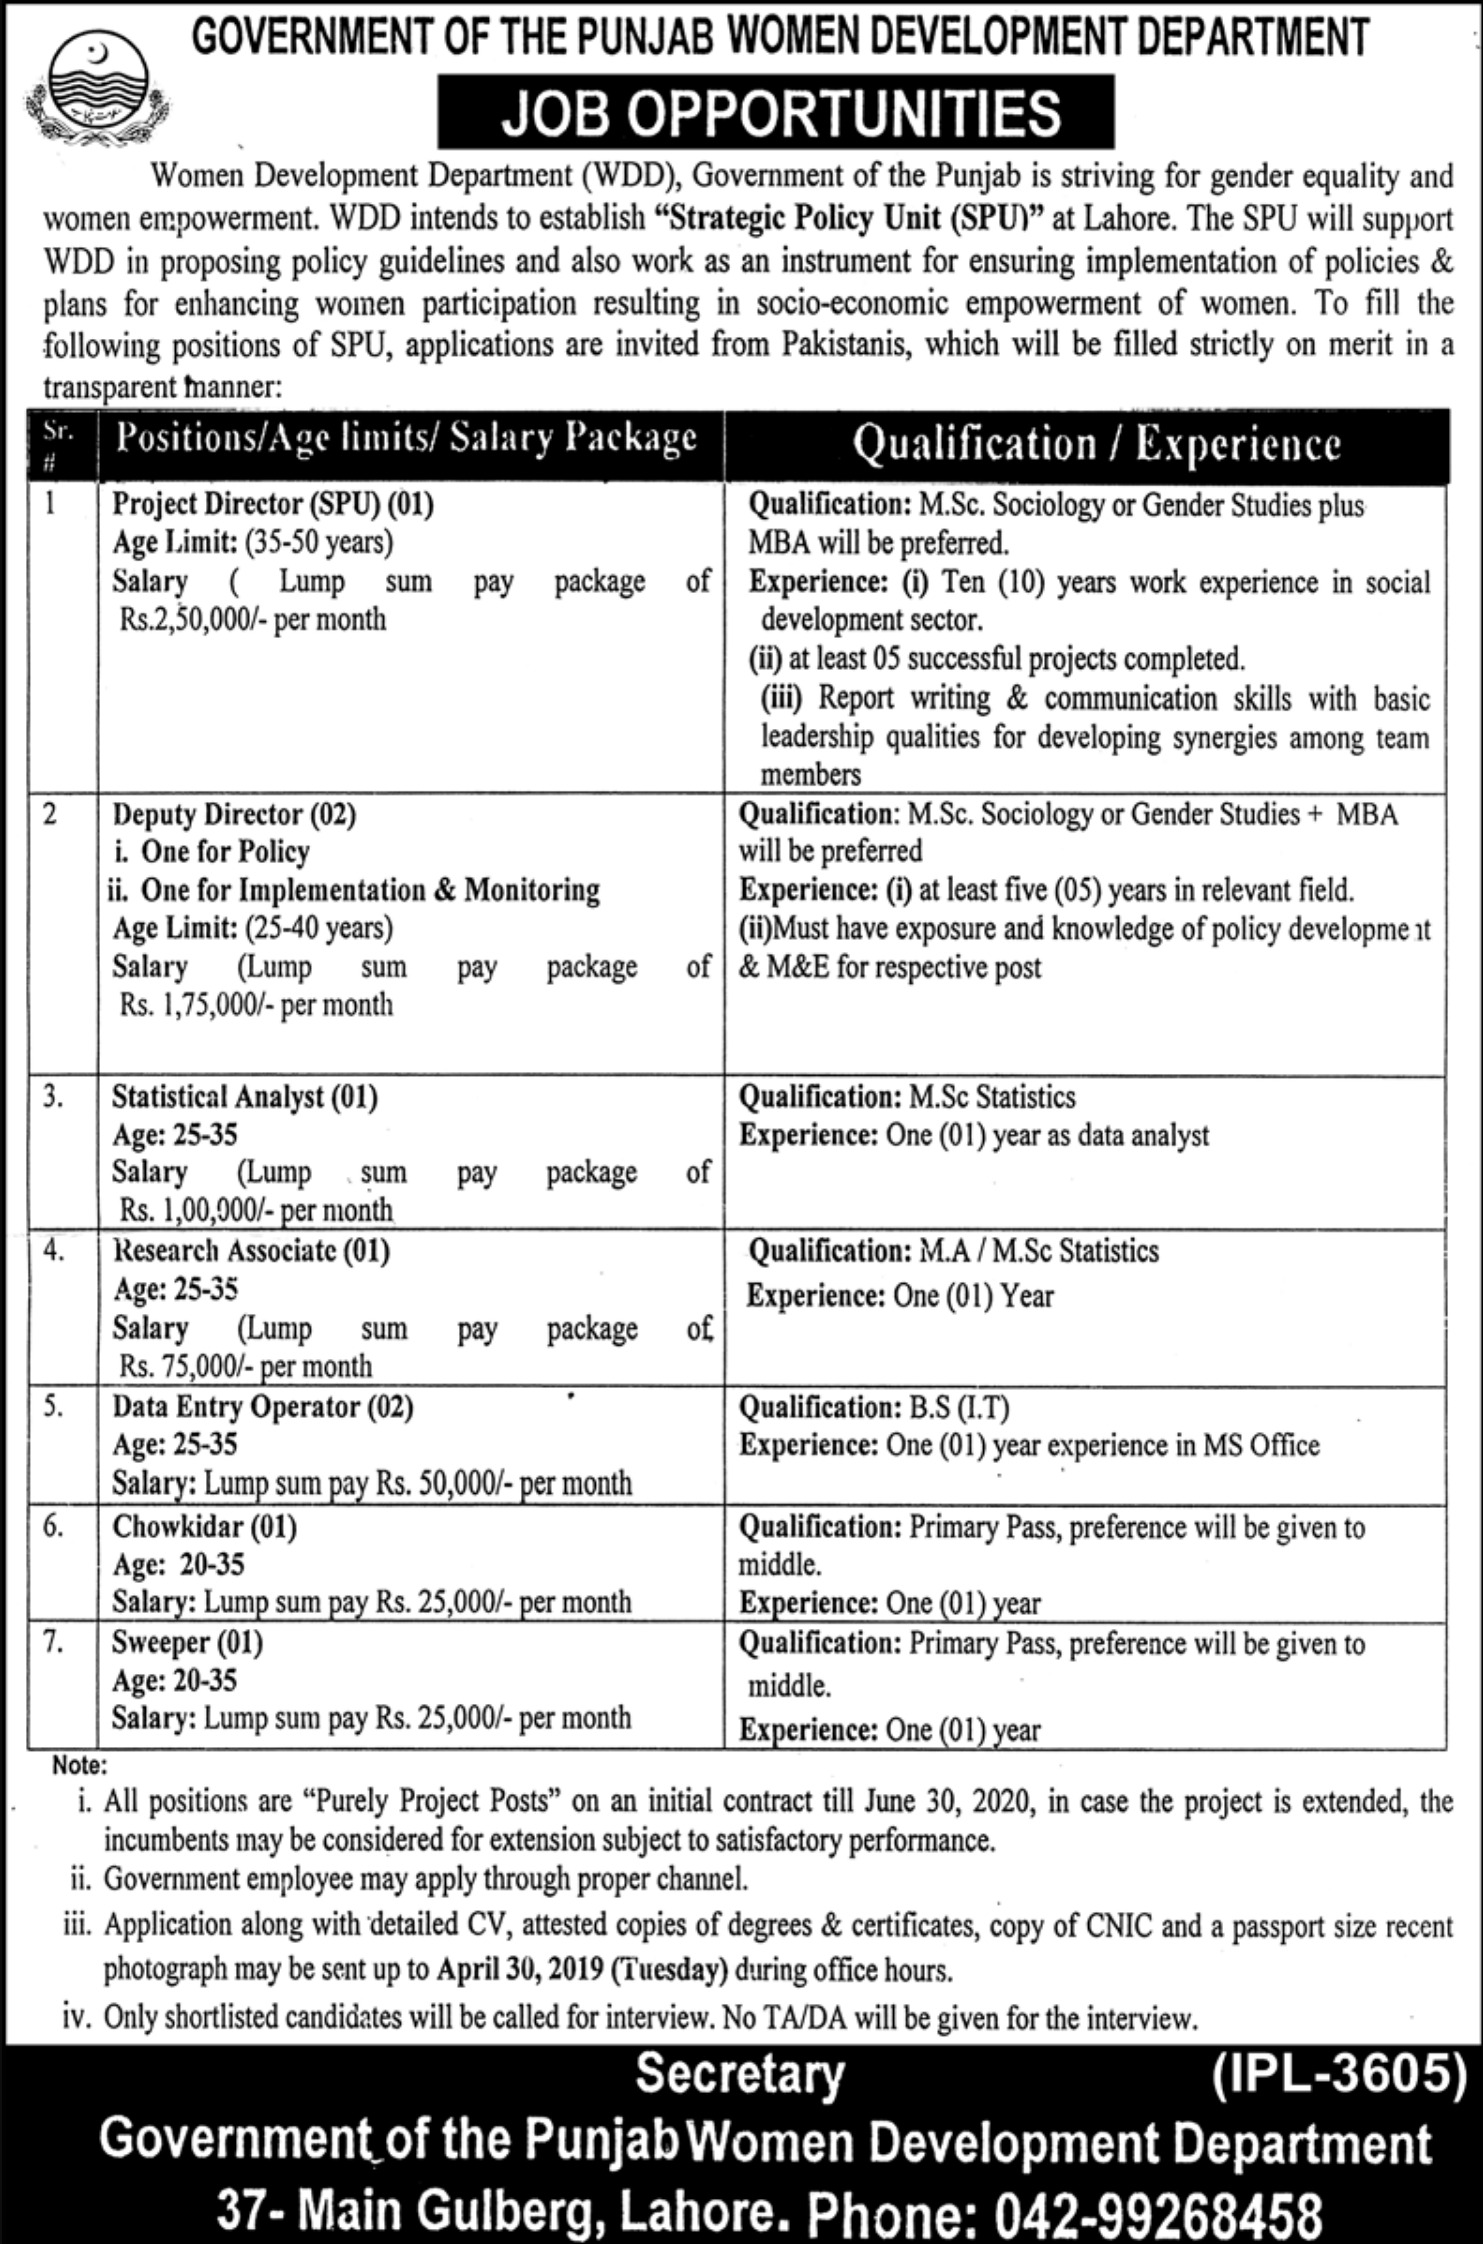 Women Development Department WDD Lahore Jobs 2019 Govt of Punjab